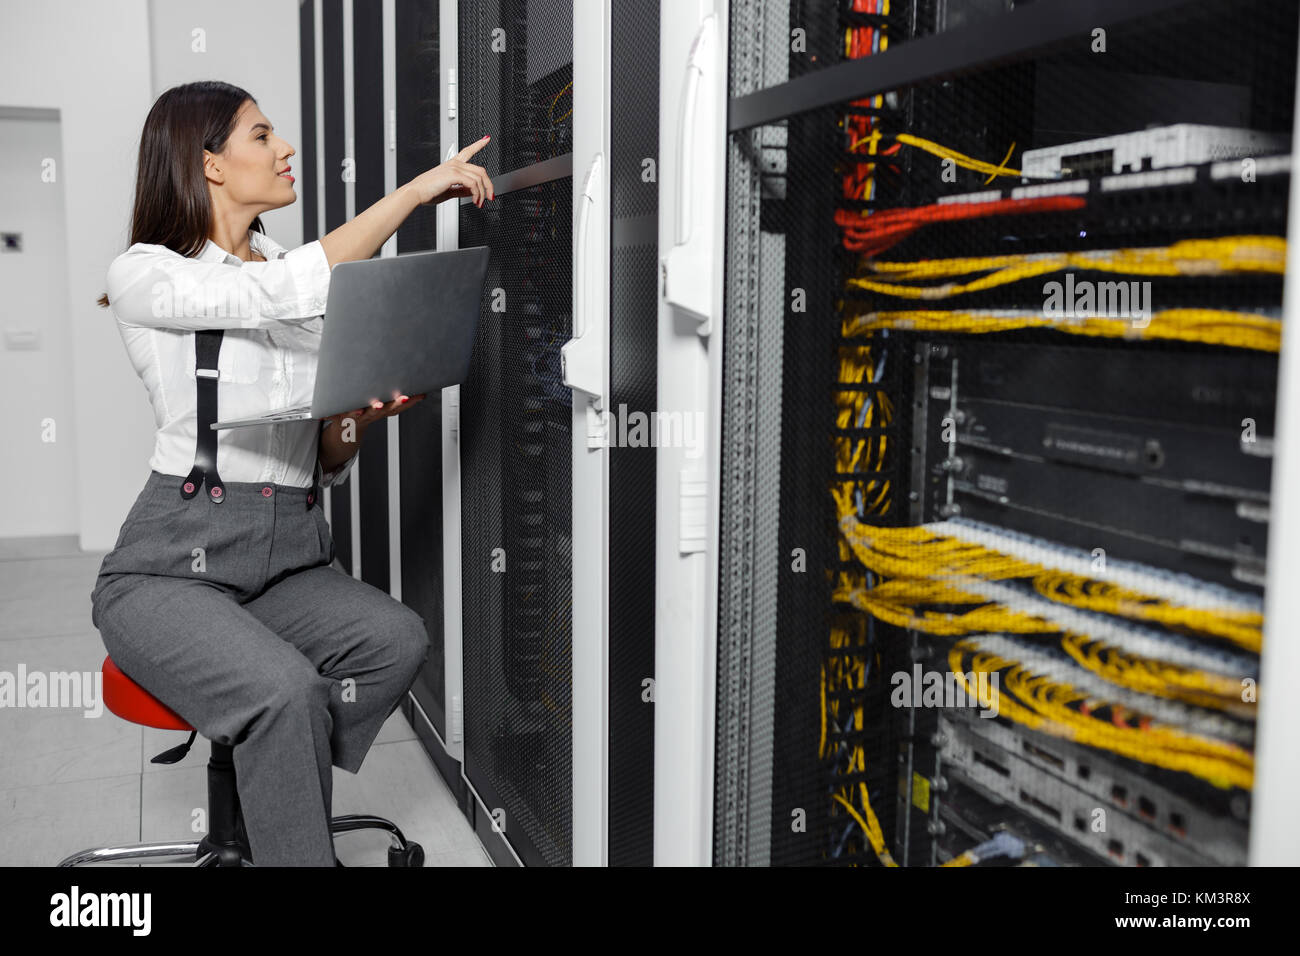 Portrait of technician working on laptop in server room - Stock Image